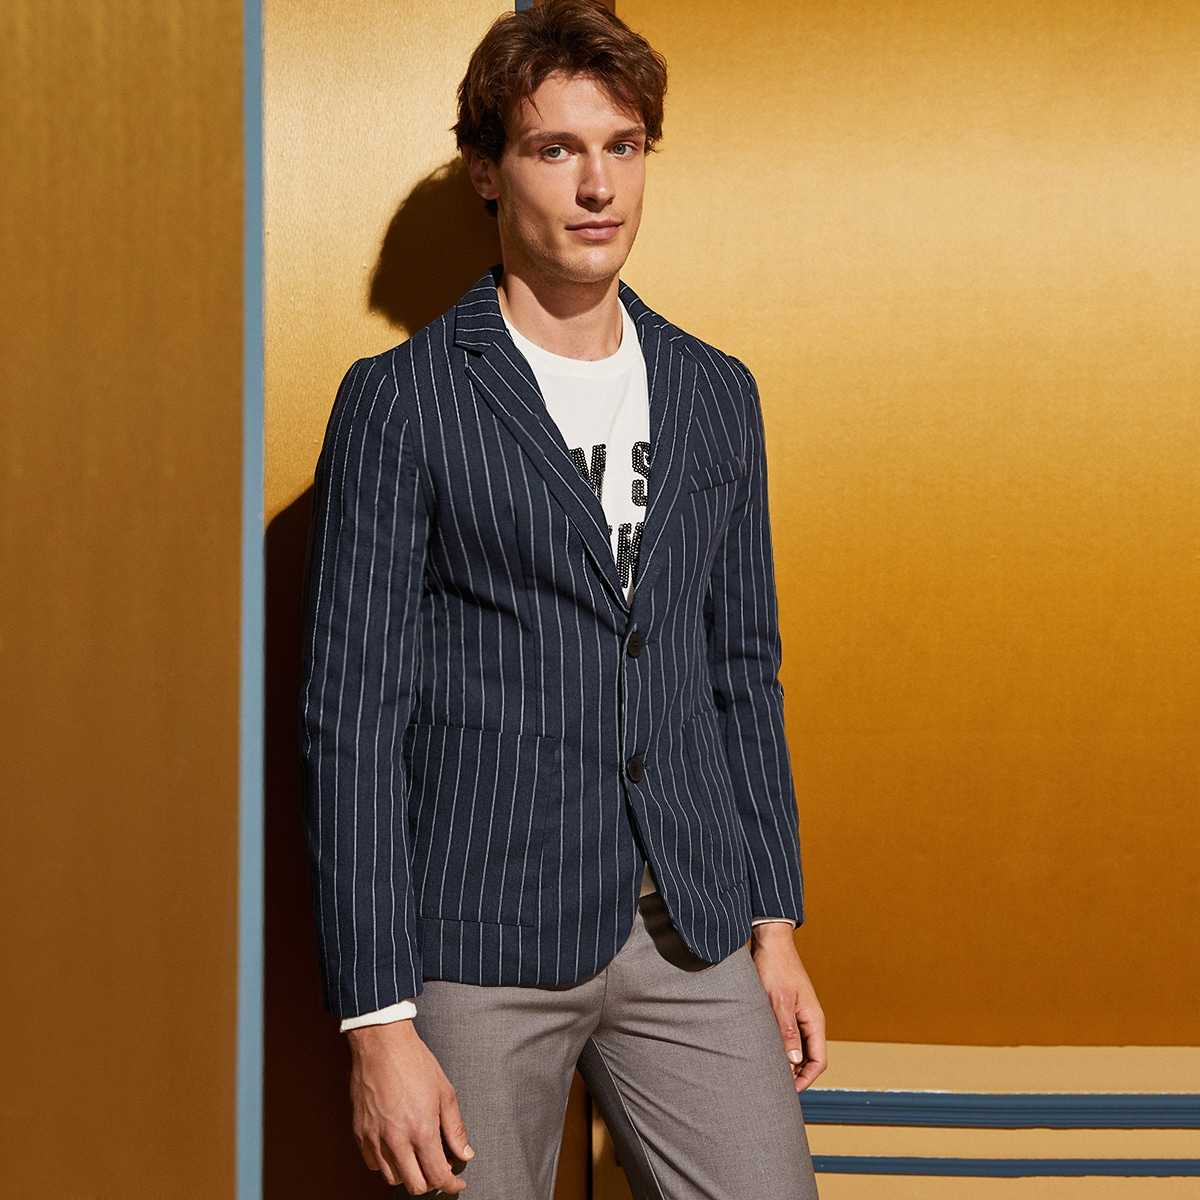 Guys Pocket Front Striped Blazer Without Shirt in Navy by ROMWE on GOOFASH